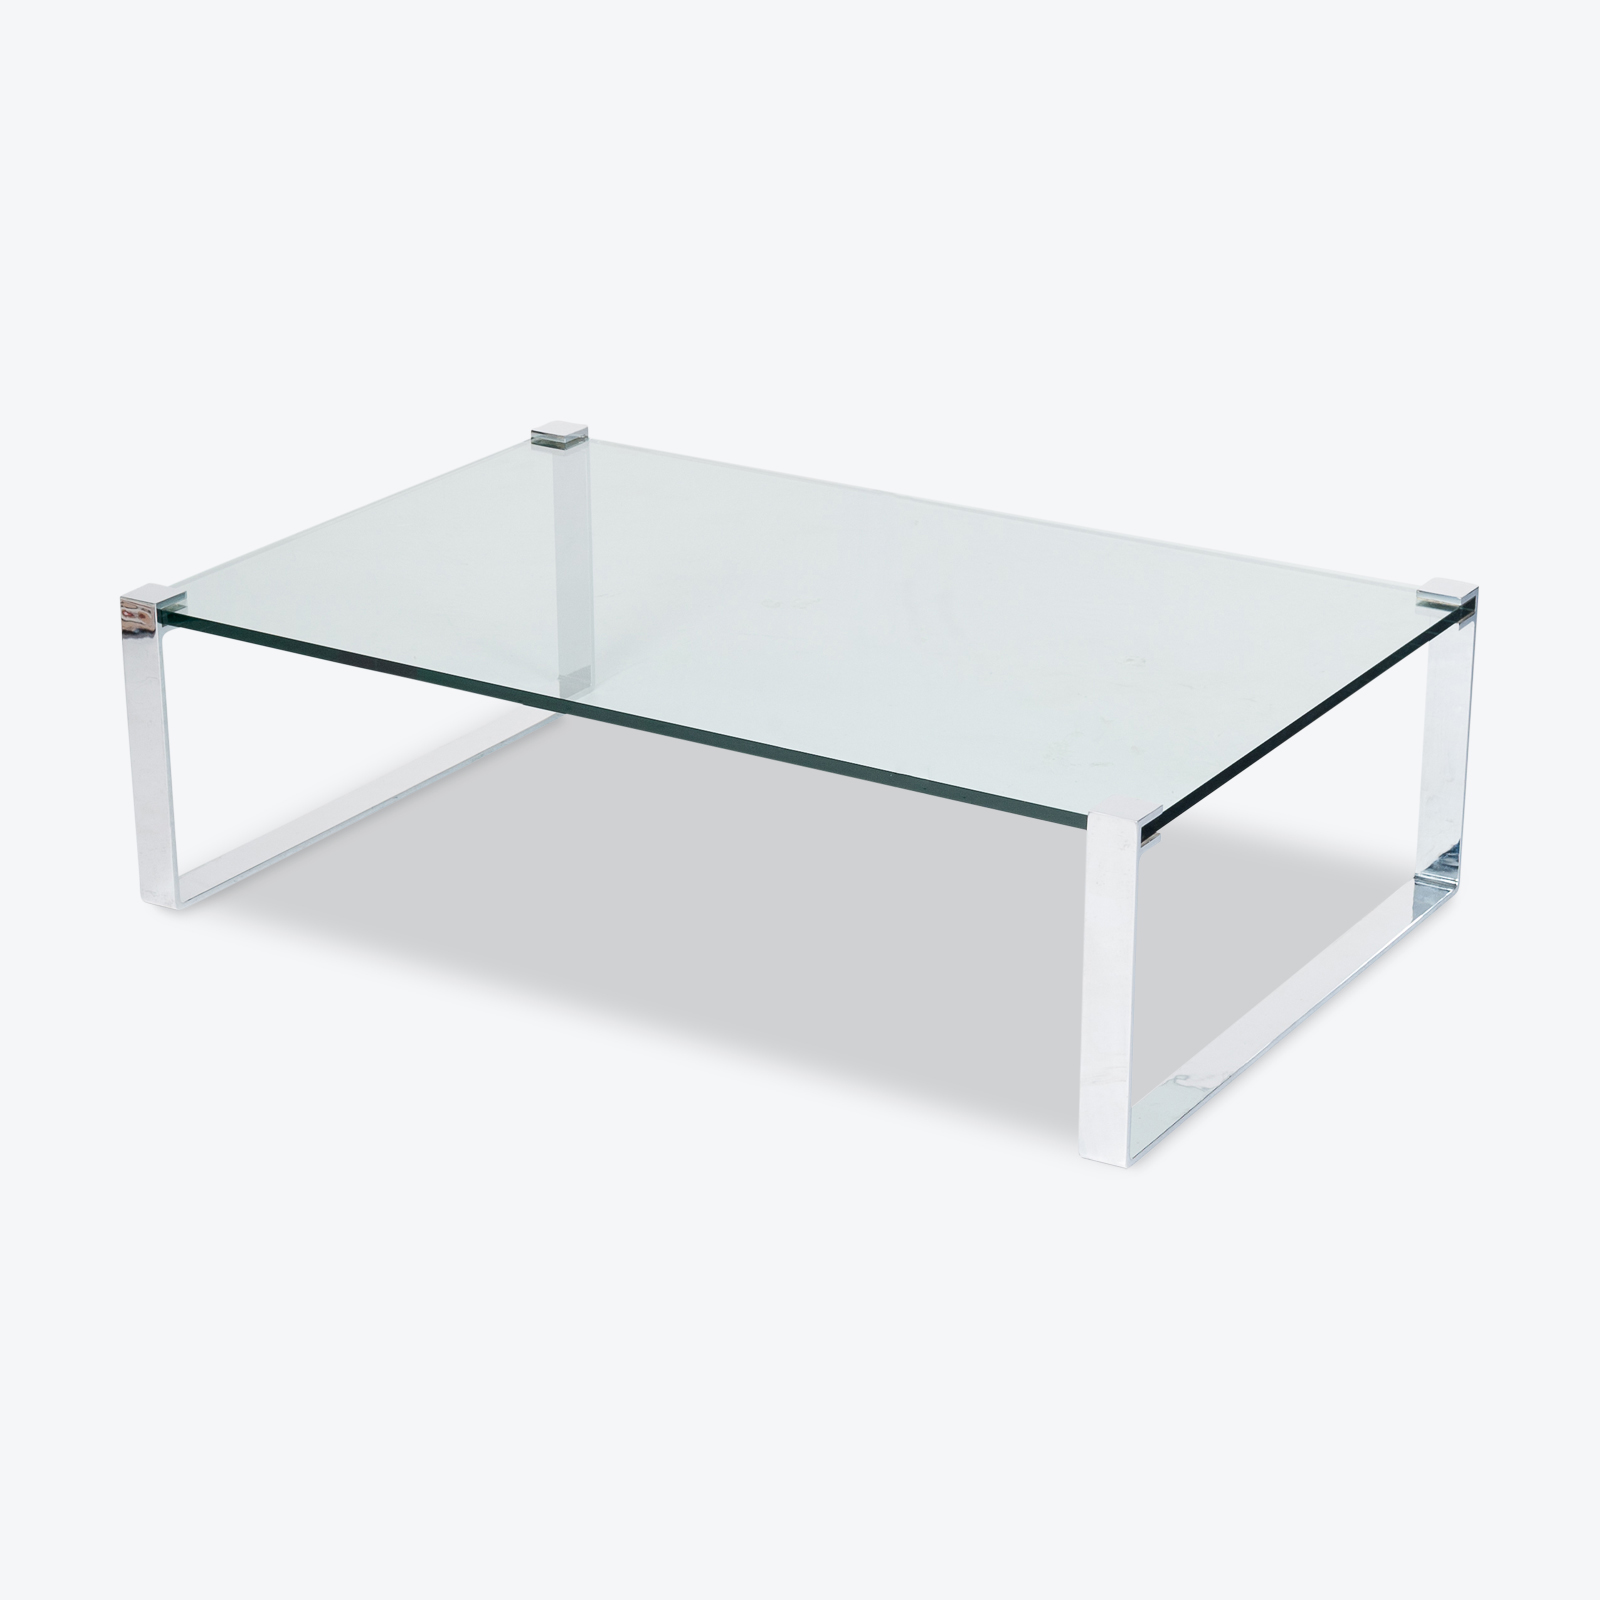 Model K 831 Rectangular Coffee Table With Glass And Polished Chrome By Friedrich Wilhelm Moller For Ronald Schmitt, 1970s, Germany Hero